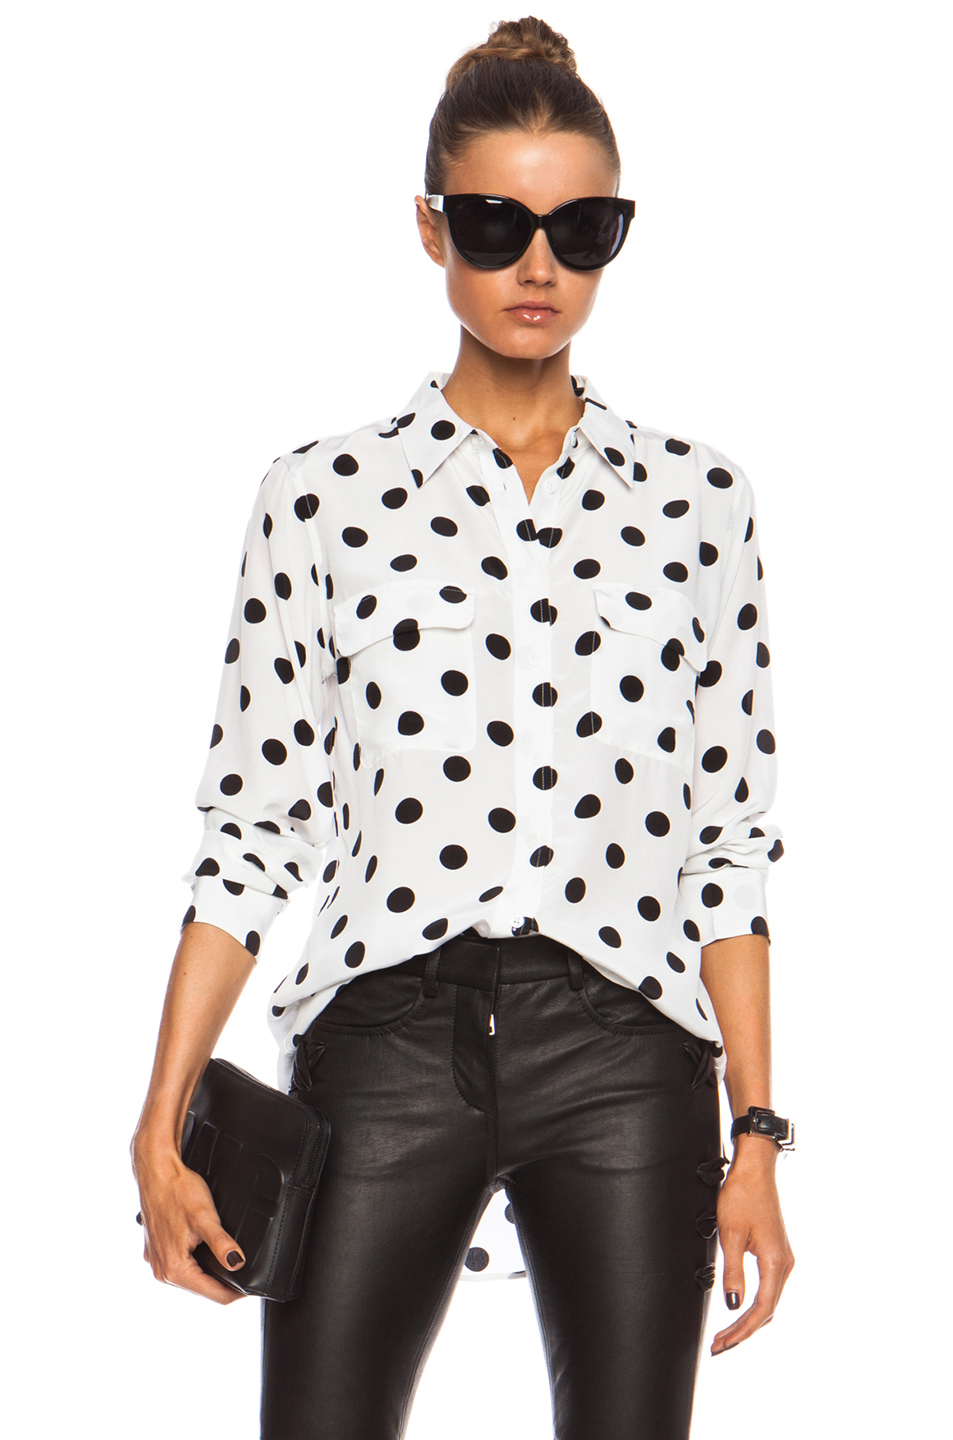 Black And White Check Shirt Women